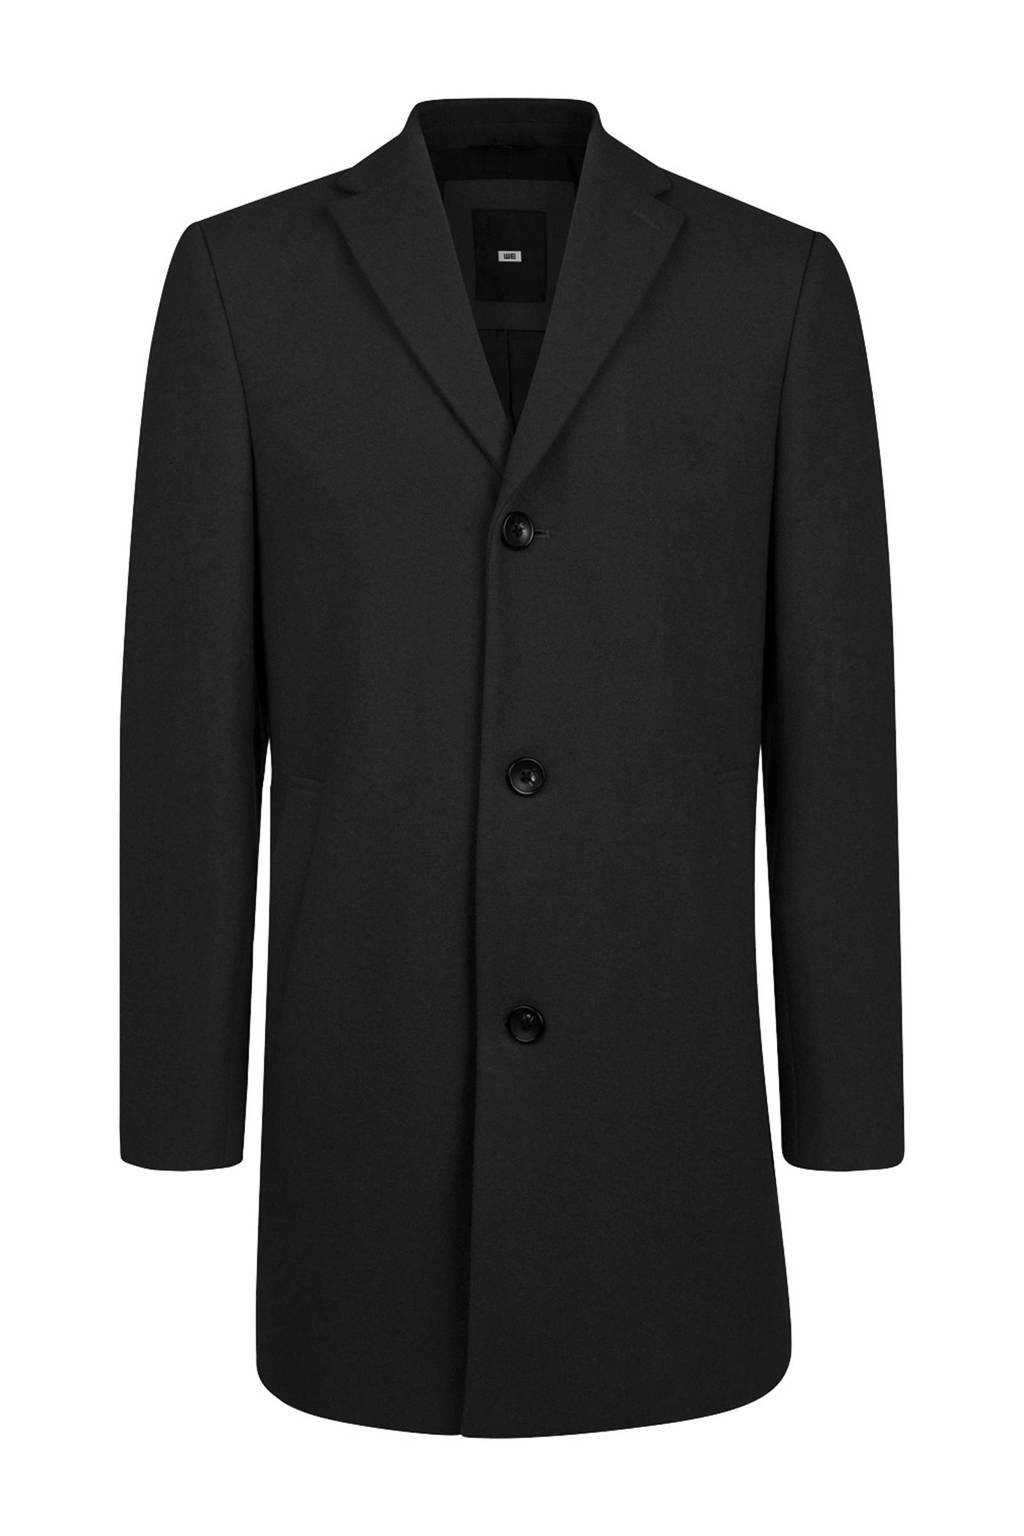 WE Fashion wollen coat zwart, Black Uni